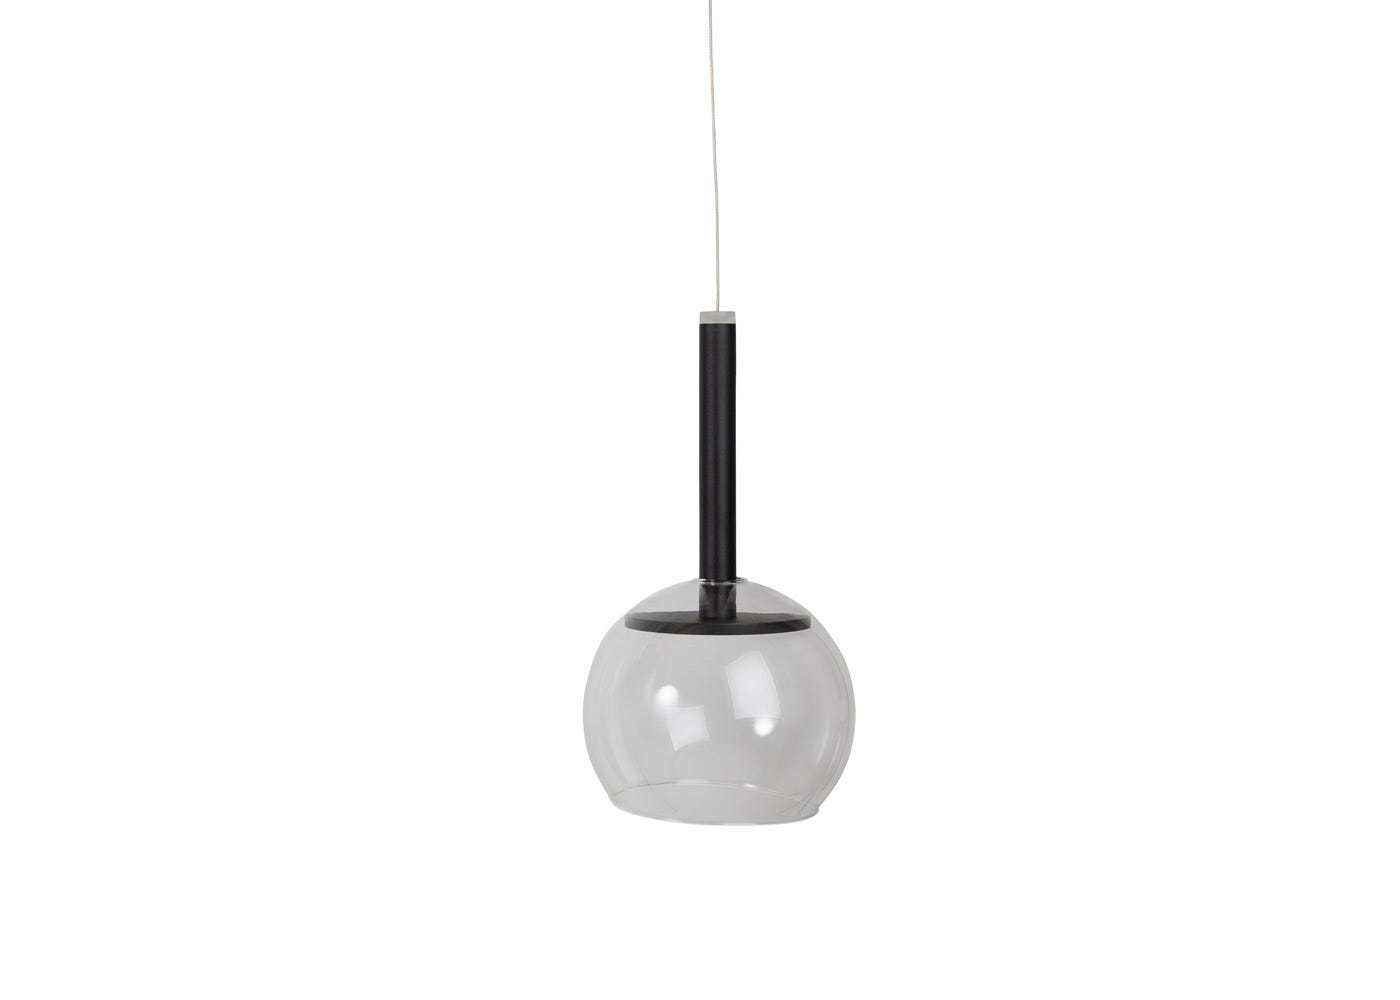 As shown: Disc long LED pendant in black with clear glass shade (sold separately) - off.